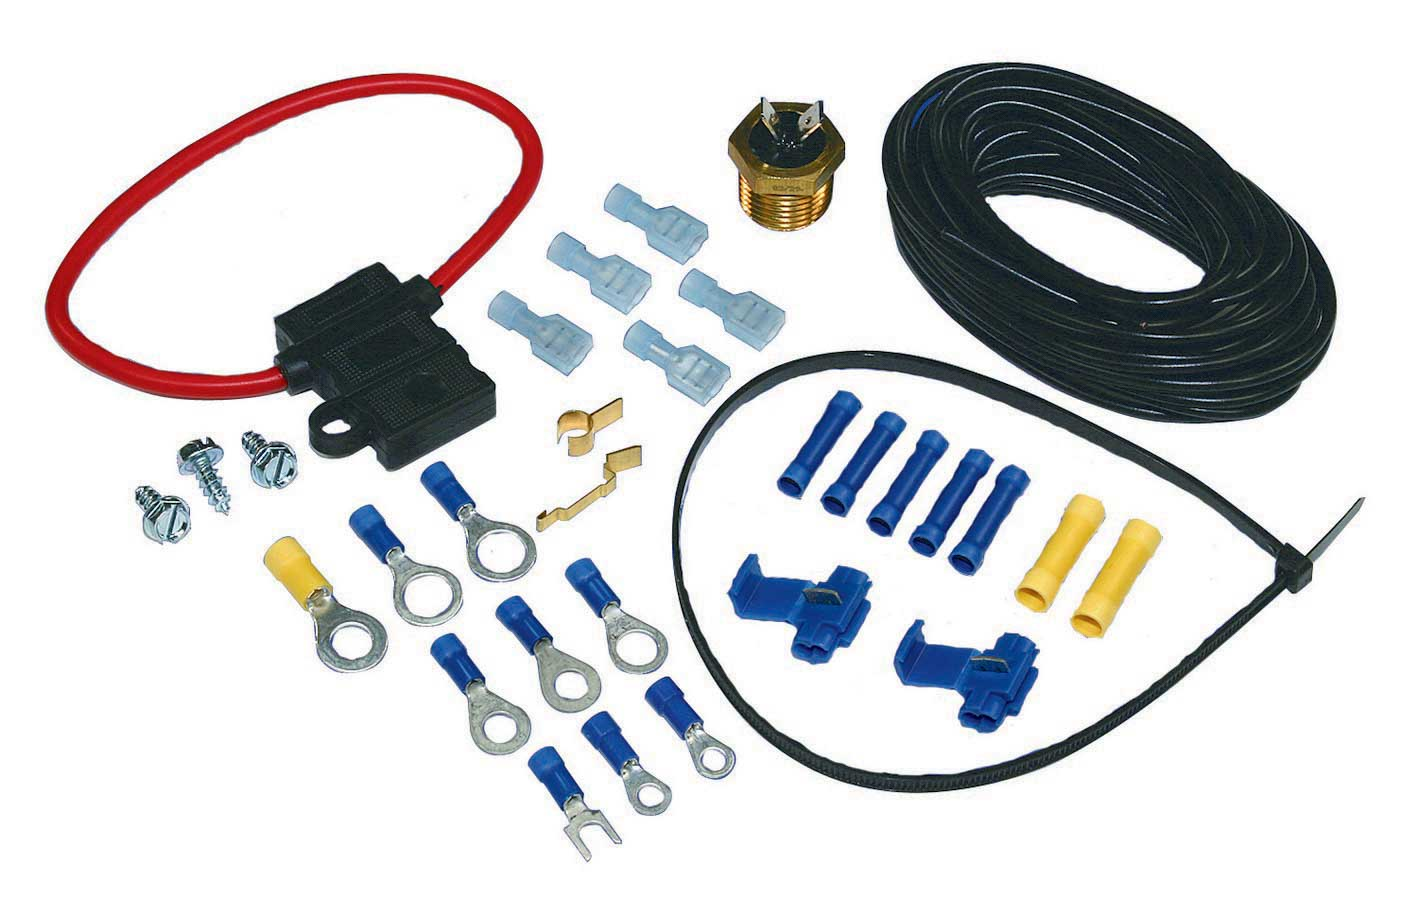 Shop For Electric Fan Wiring And Components Arob Performance Parts Painless 30111 Instructions Kit Screw In